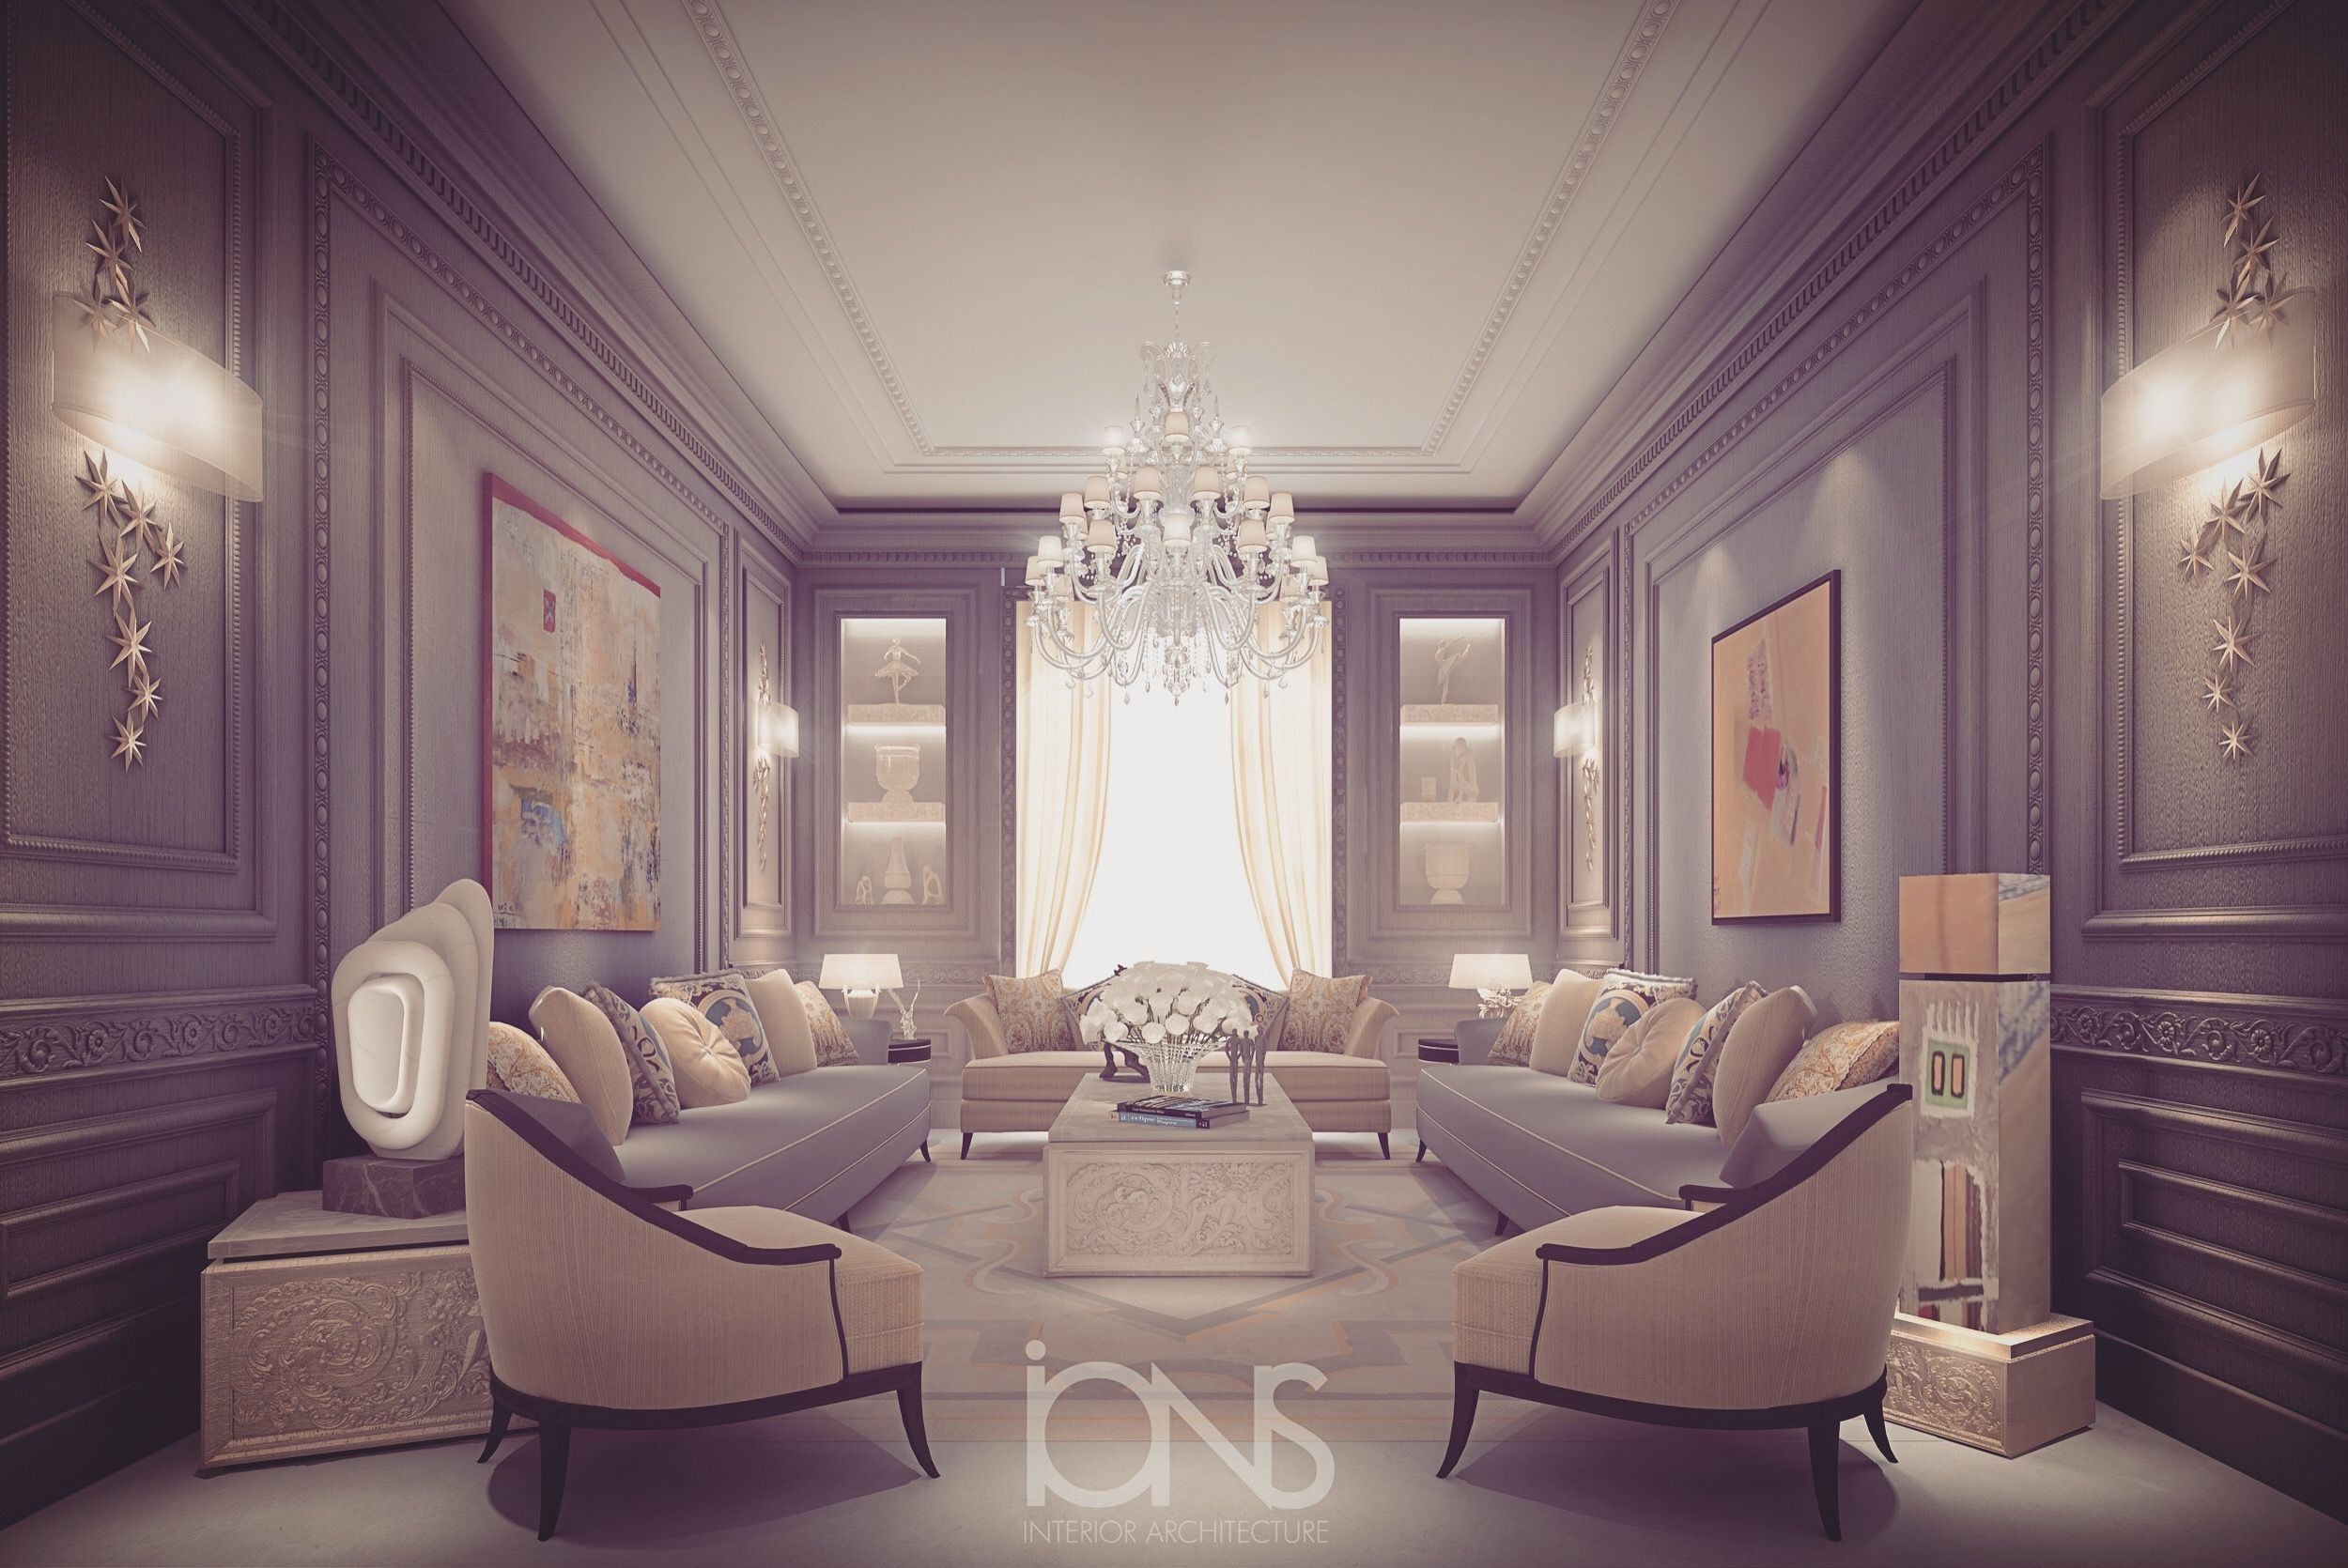 Ions Interior Design Dubai family room by ions design | sitting room design, hotel